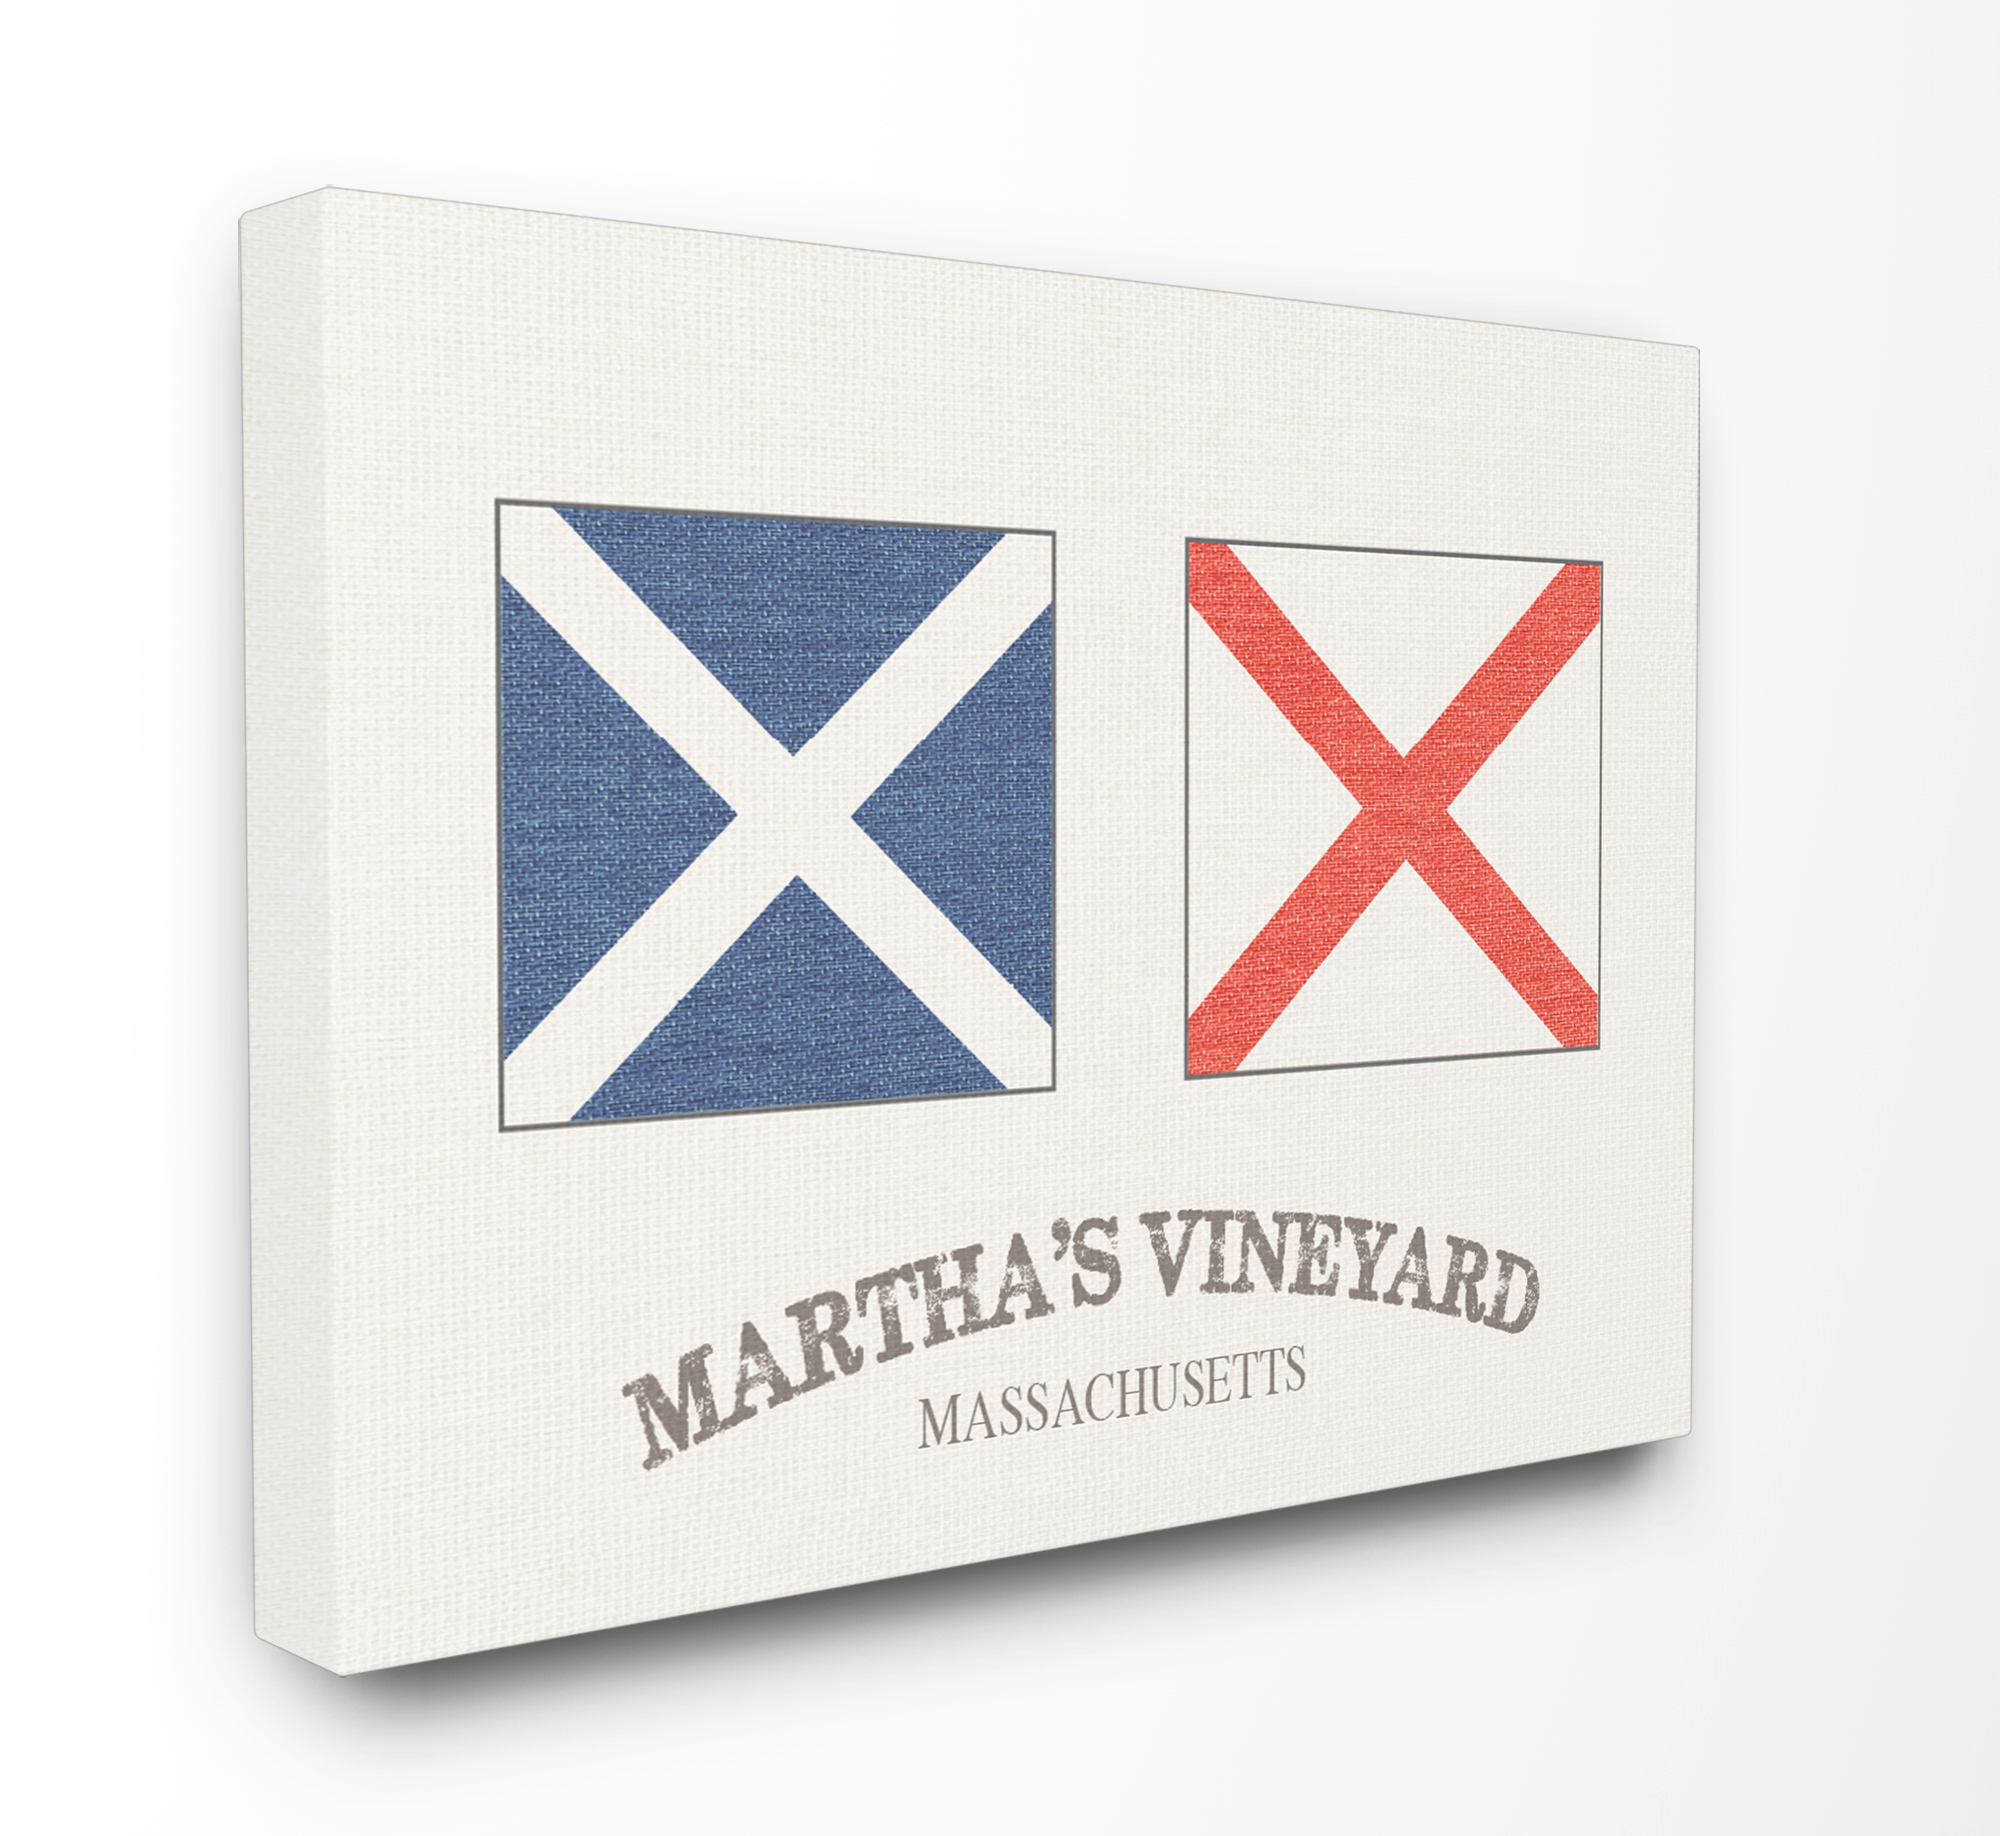 The Stupell Home Decor Collection Martha's Vineyard Nautical Flags Oversized Stretched Canvas Wall Art, 24 x 1.5 x 30